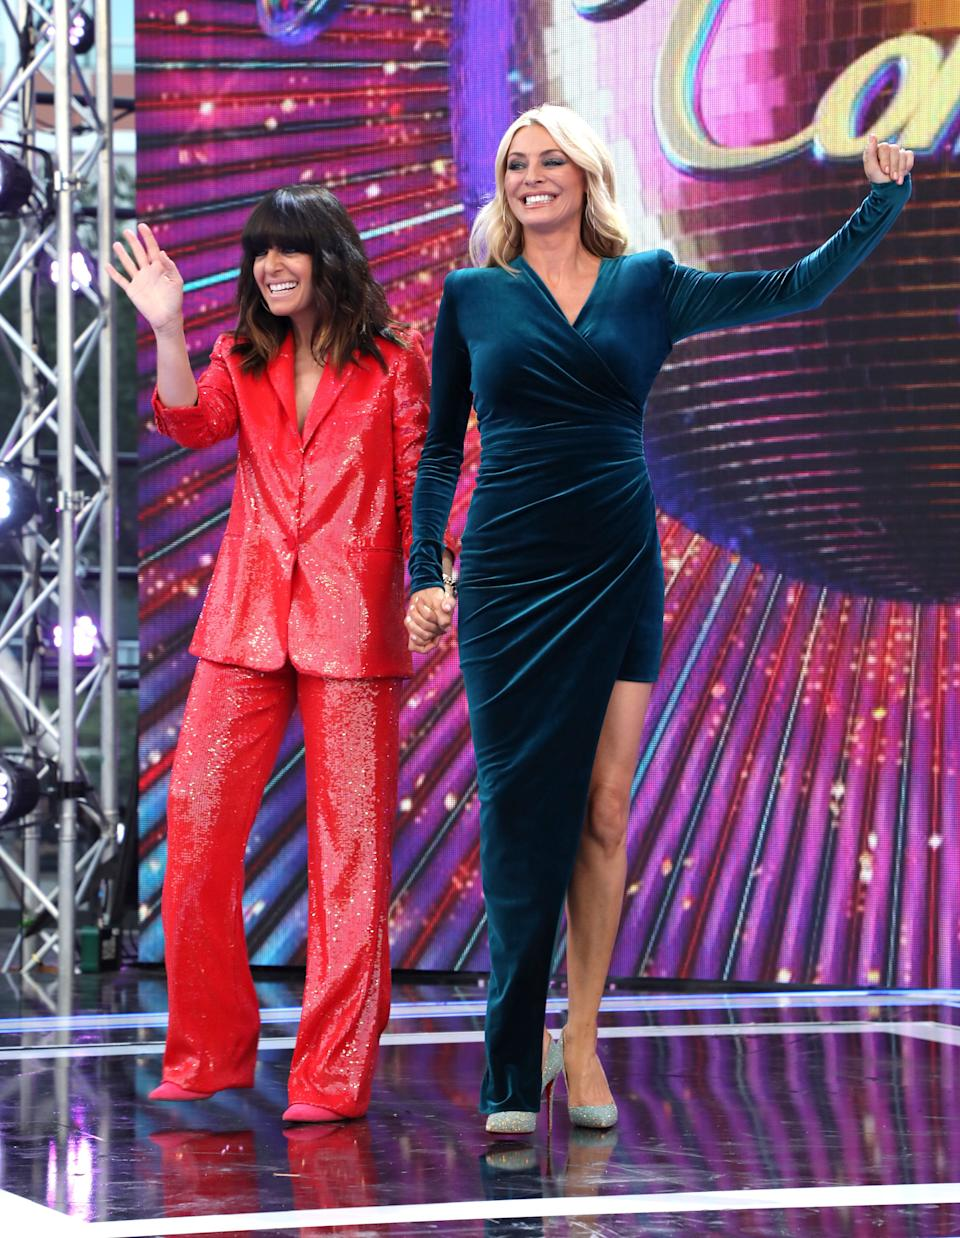 """LONDON, ENGLAND - AUGUST 26:  Hosts Claudia Winkleman and Tess Daly attend the """"Strictly Come Dancing"""" launch show red carpet at Television Centre on August 26, 2019 in London, England. (Photo by Lia Toby/Getty Images)"""